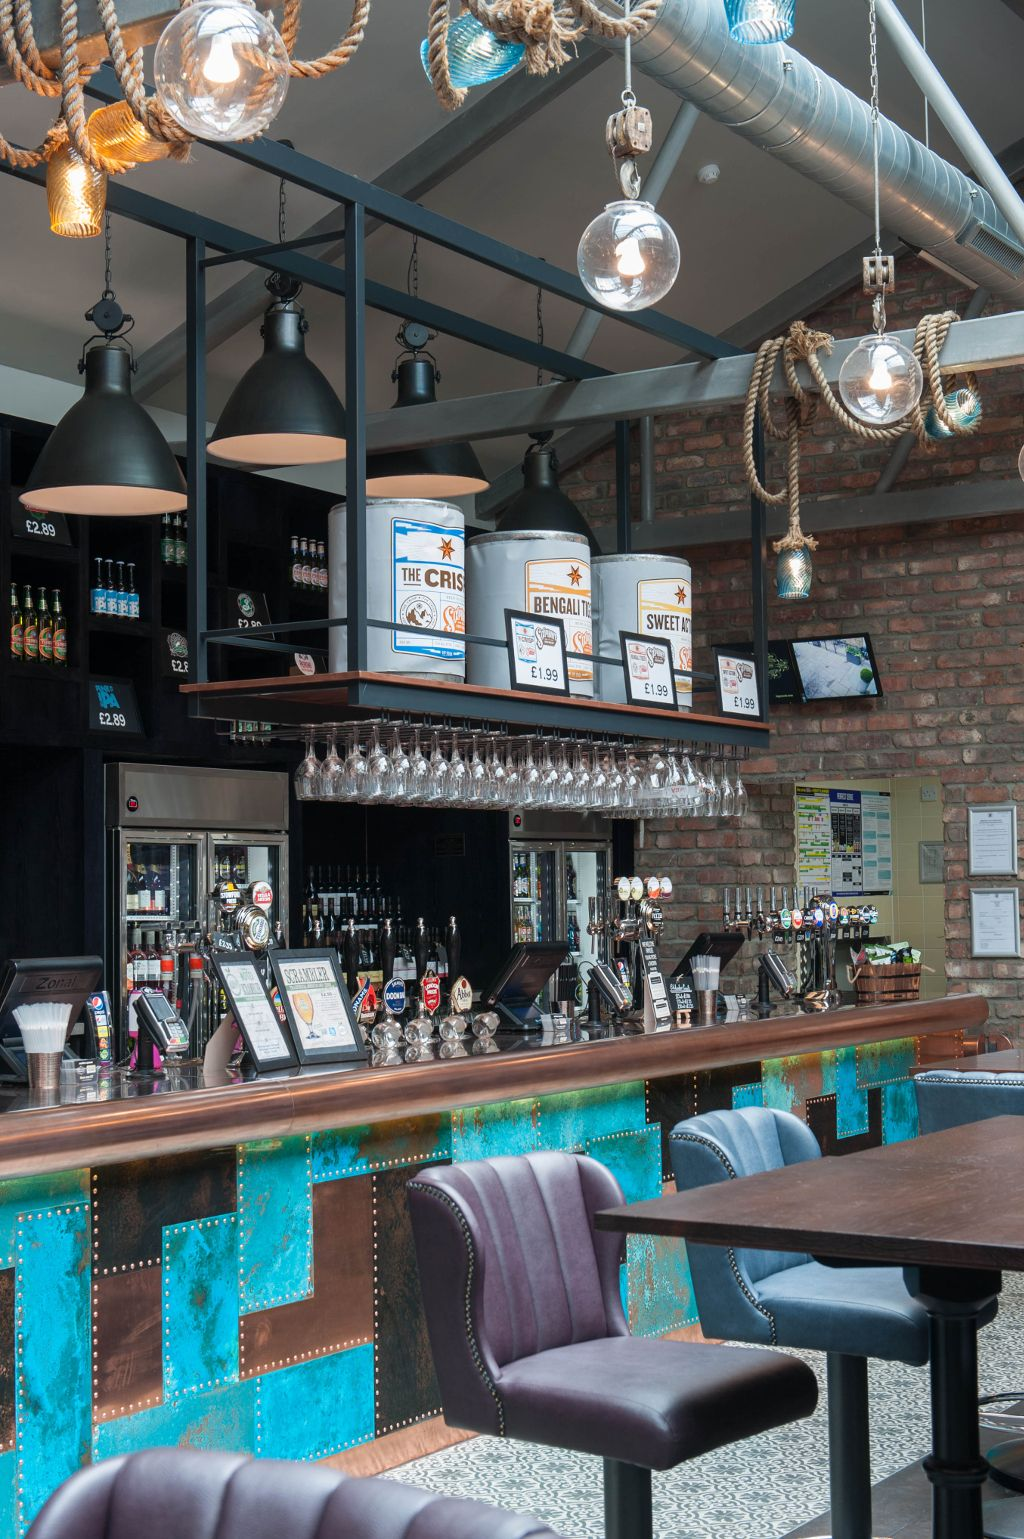 Superb Restaurant U0026 Bar Design Awards Shortlist 2015: Pub (UK)   Restaurant U0026 Bar